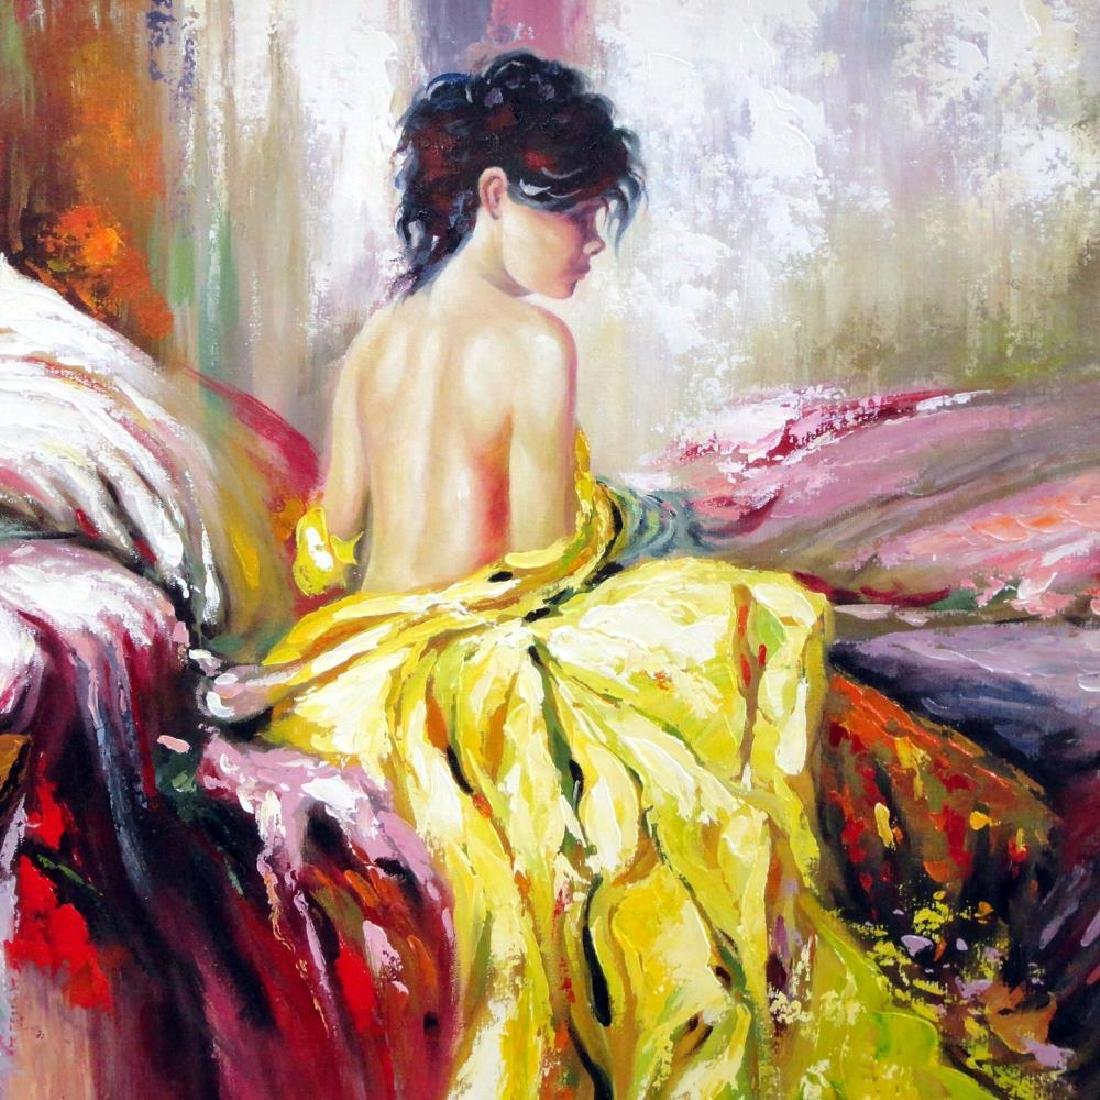 Impressionistic Large Painting on Canvas Pino Inspired - 3